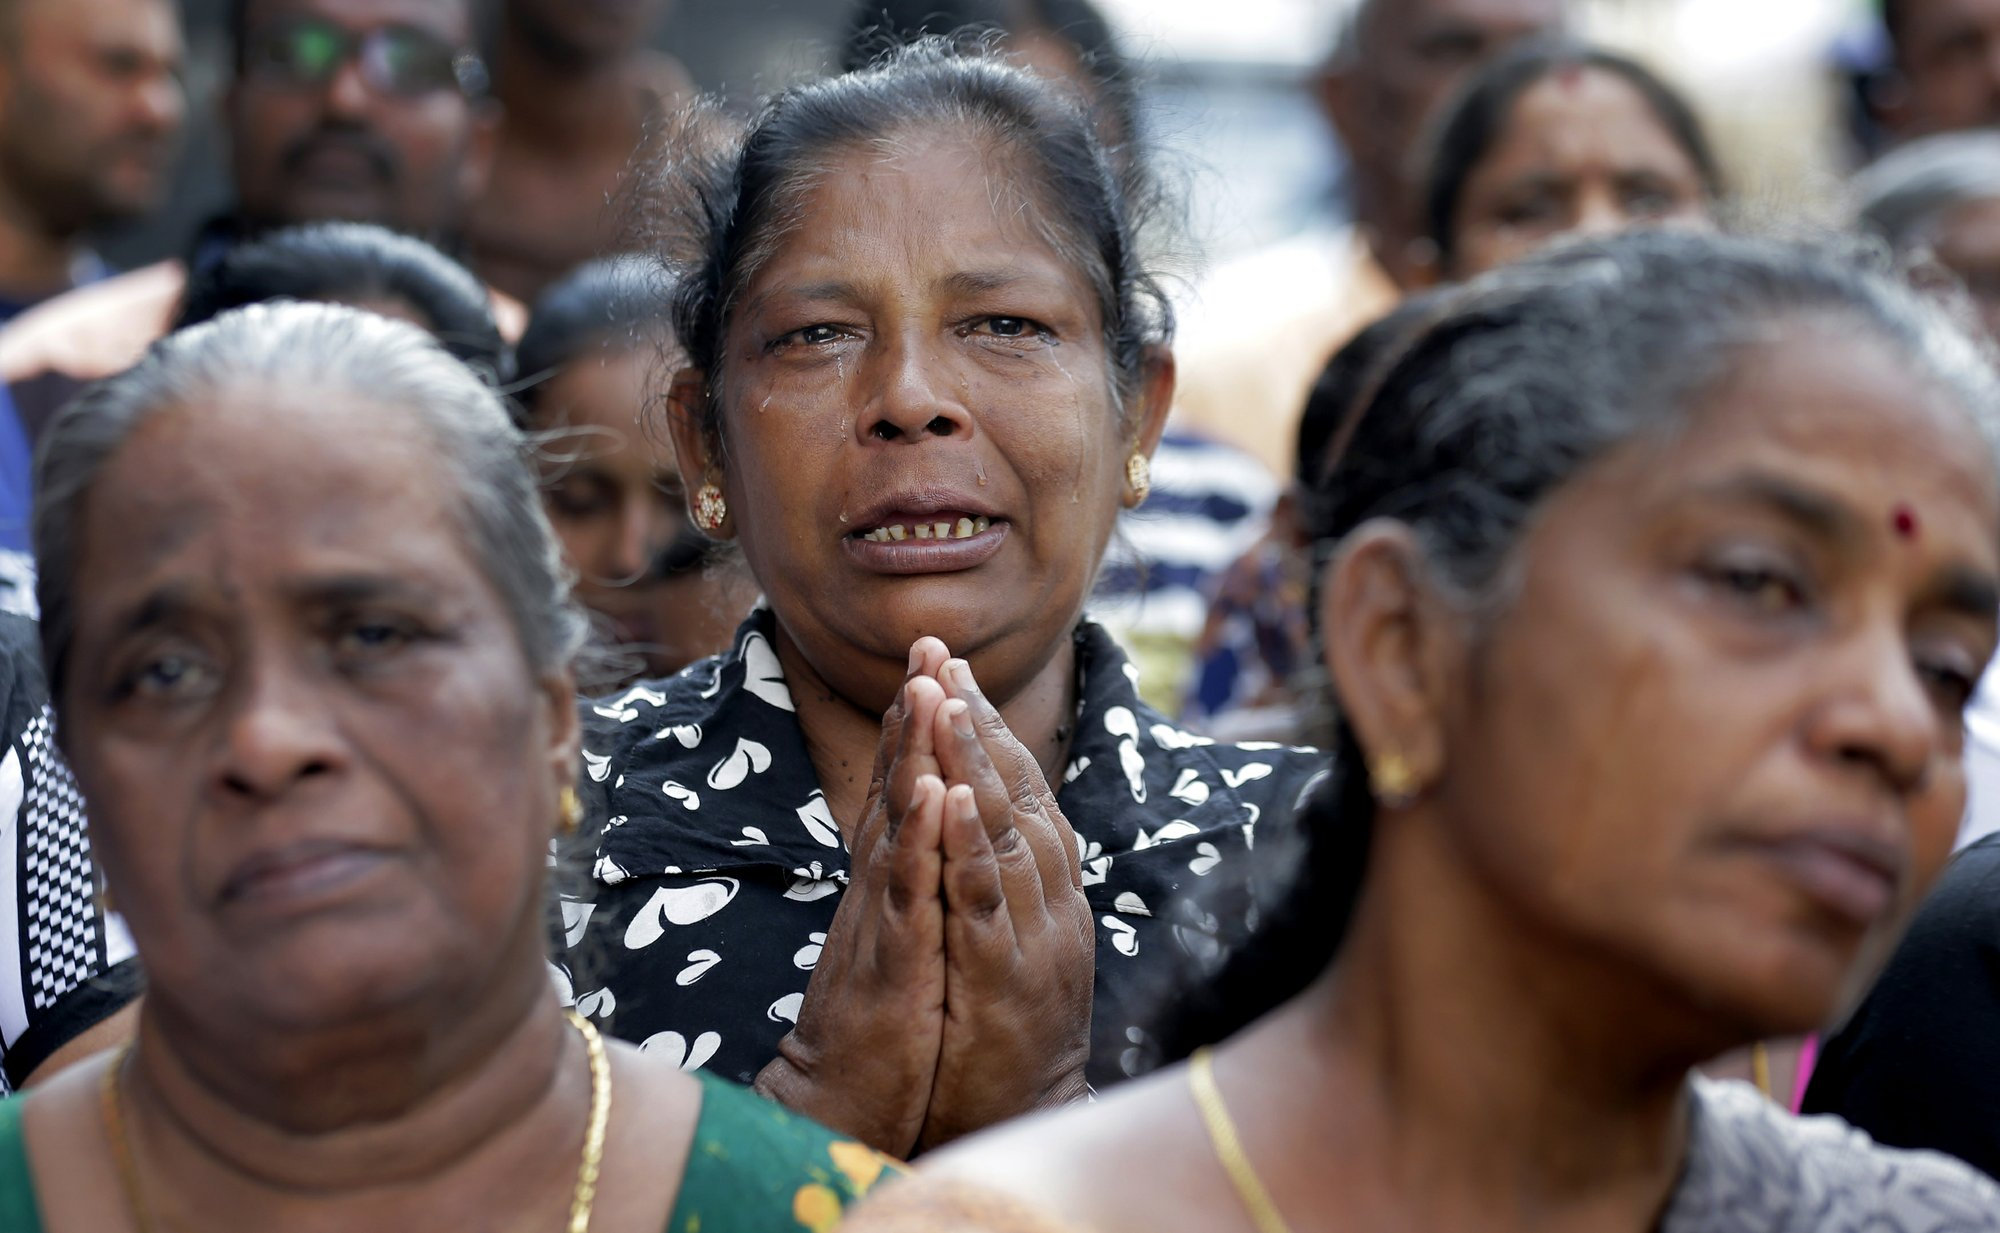 No Mass for Sri Lanka's Catholics; no veils for Muslim women